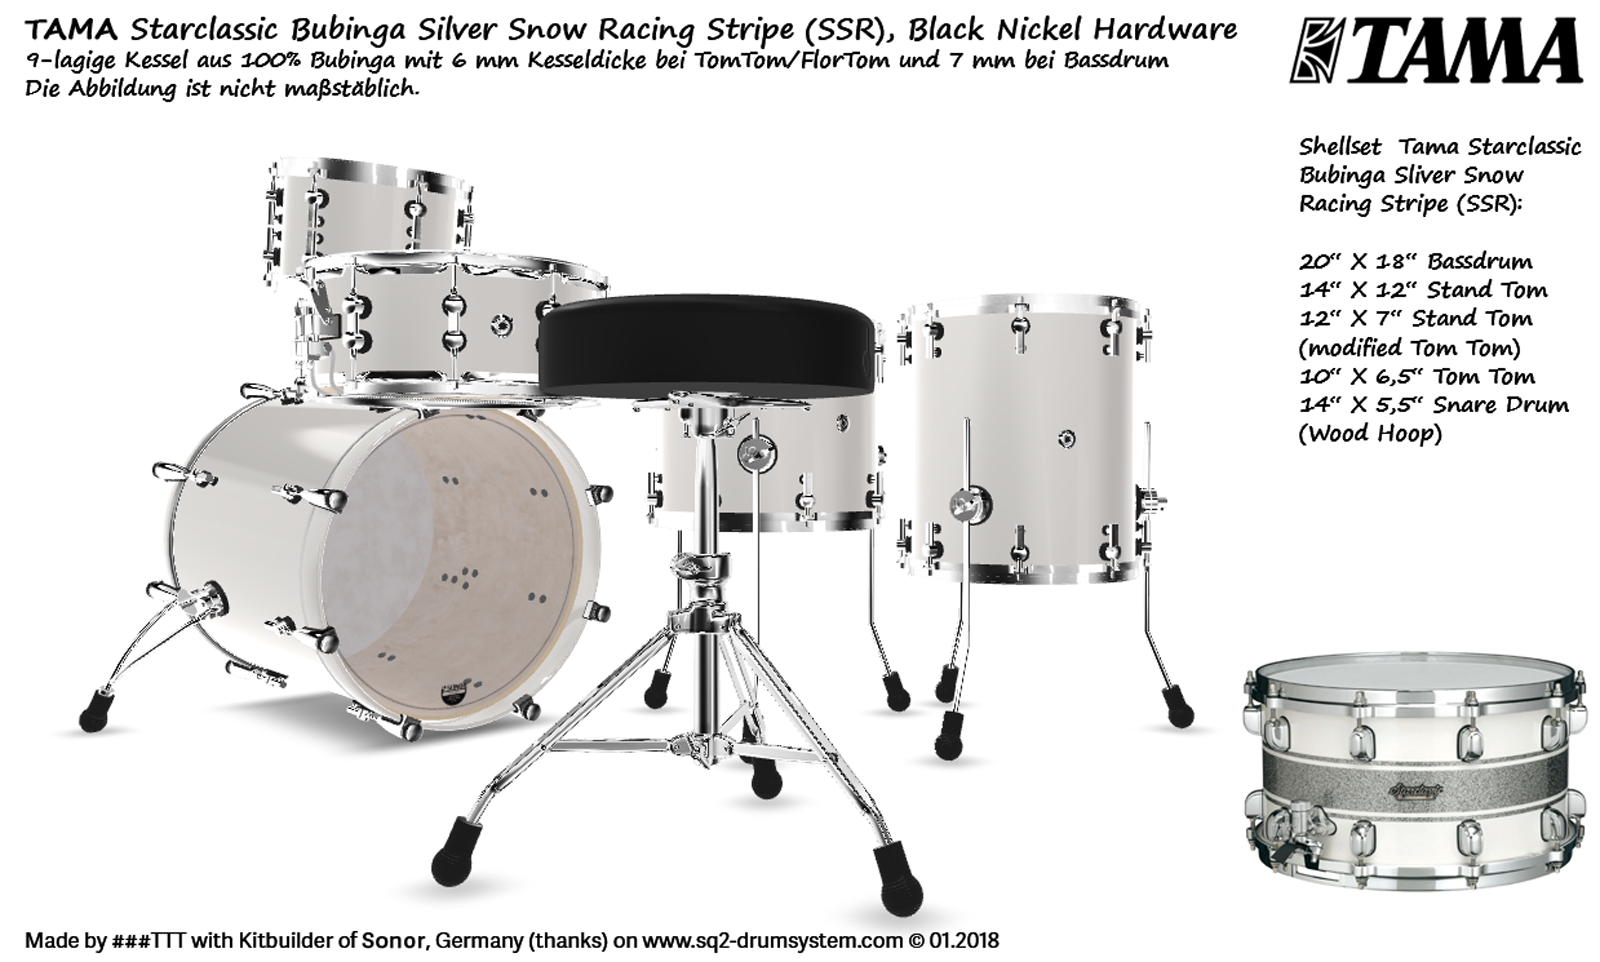 Tama Starclassic Bubinga Silver Snow Racing Stripe (SSR), Black Nickel Hardware